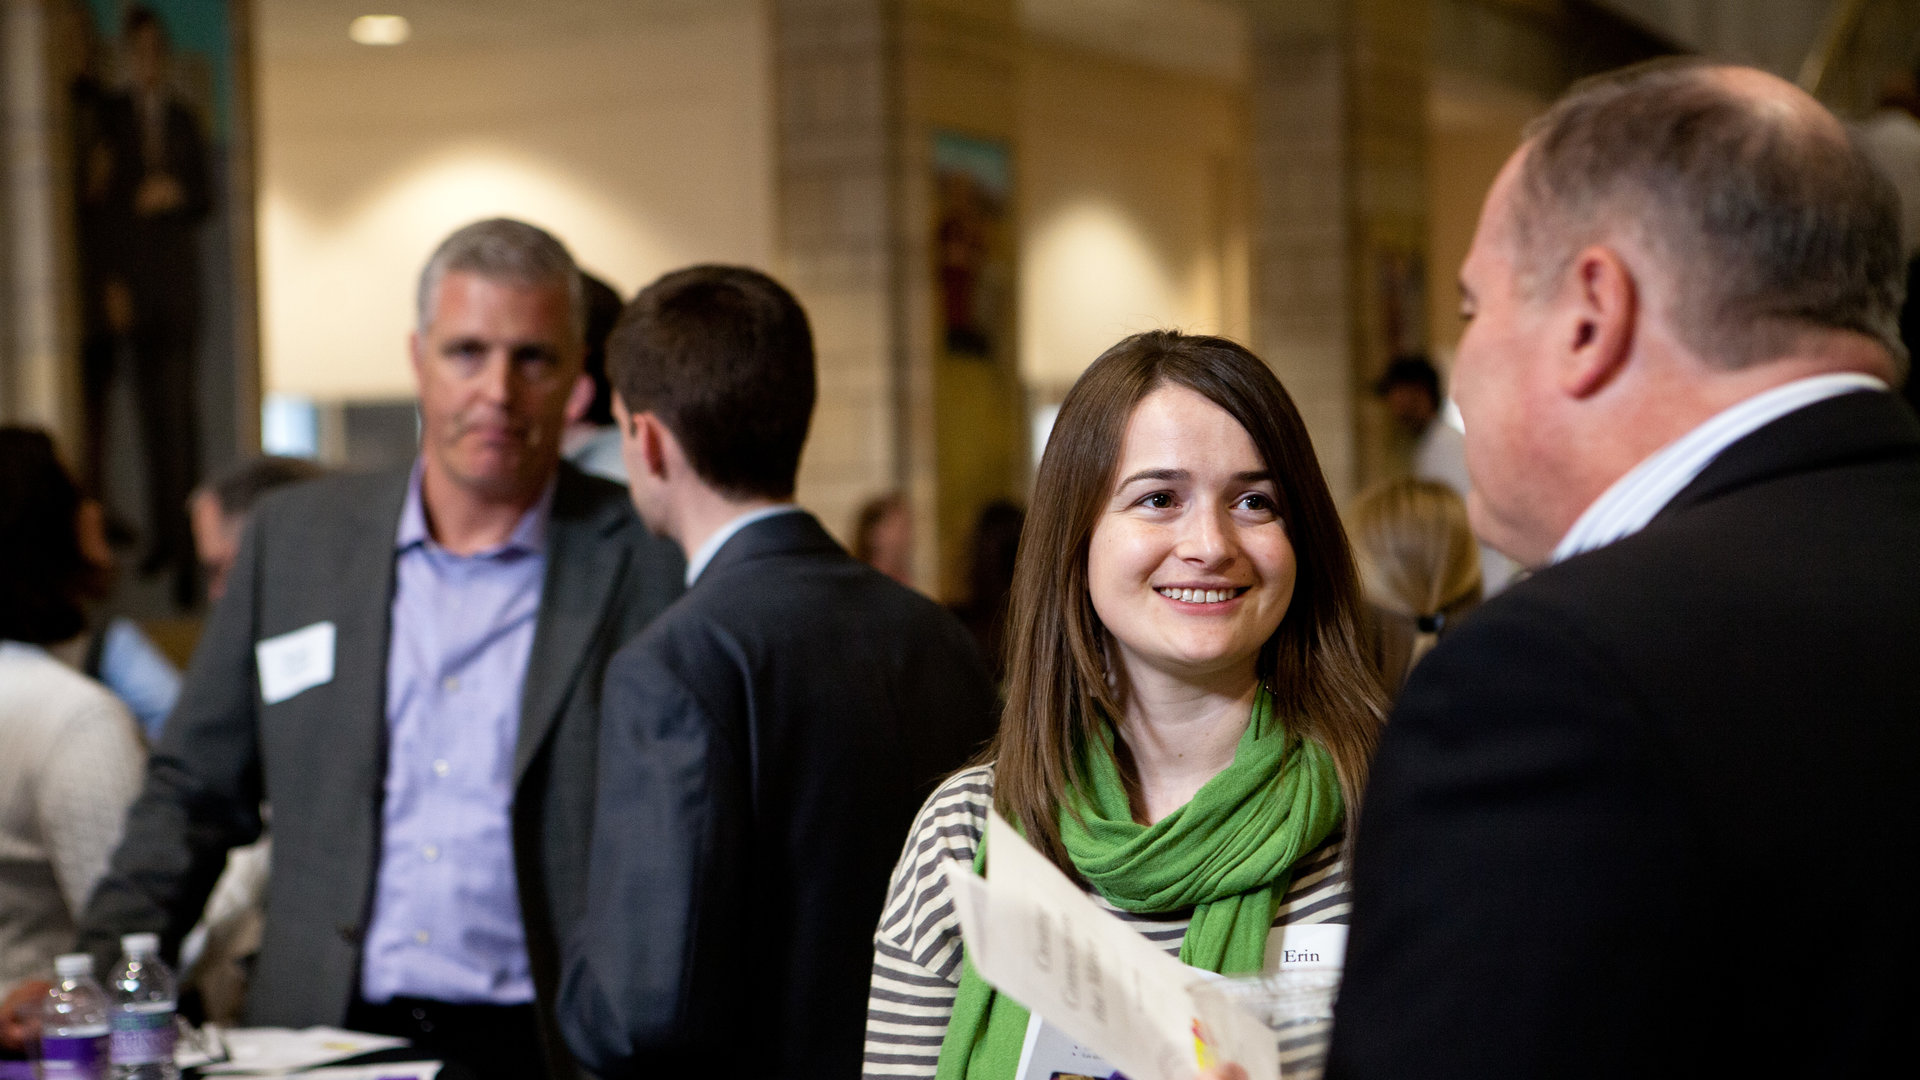 a woman speaking with a man at a st. thomas networking event